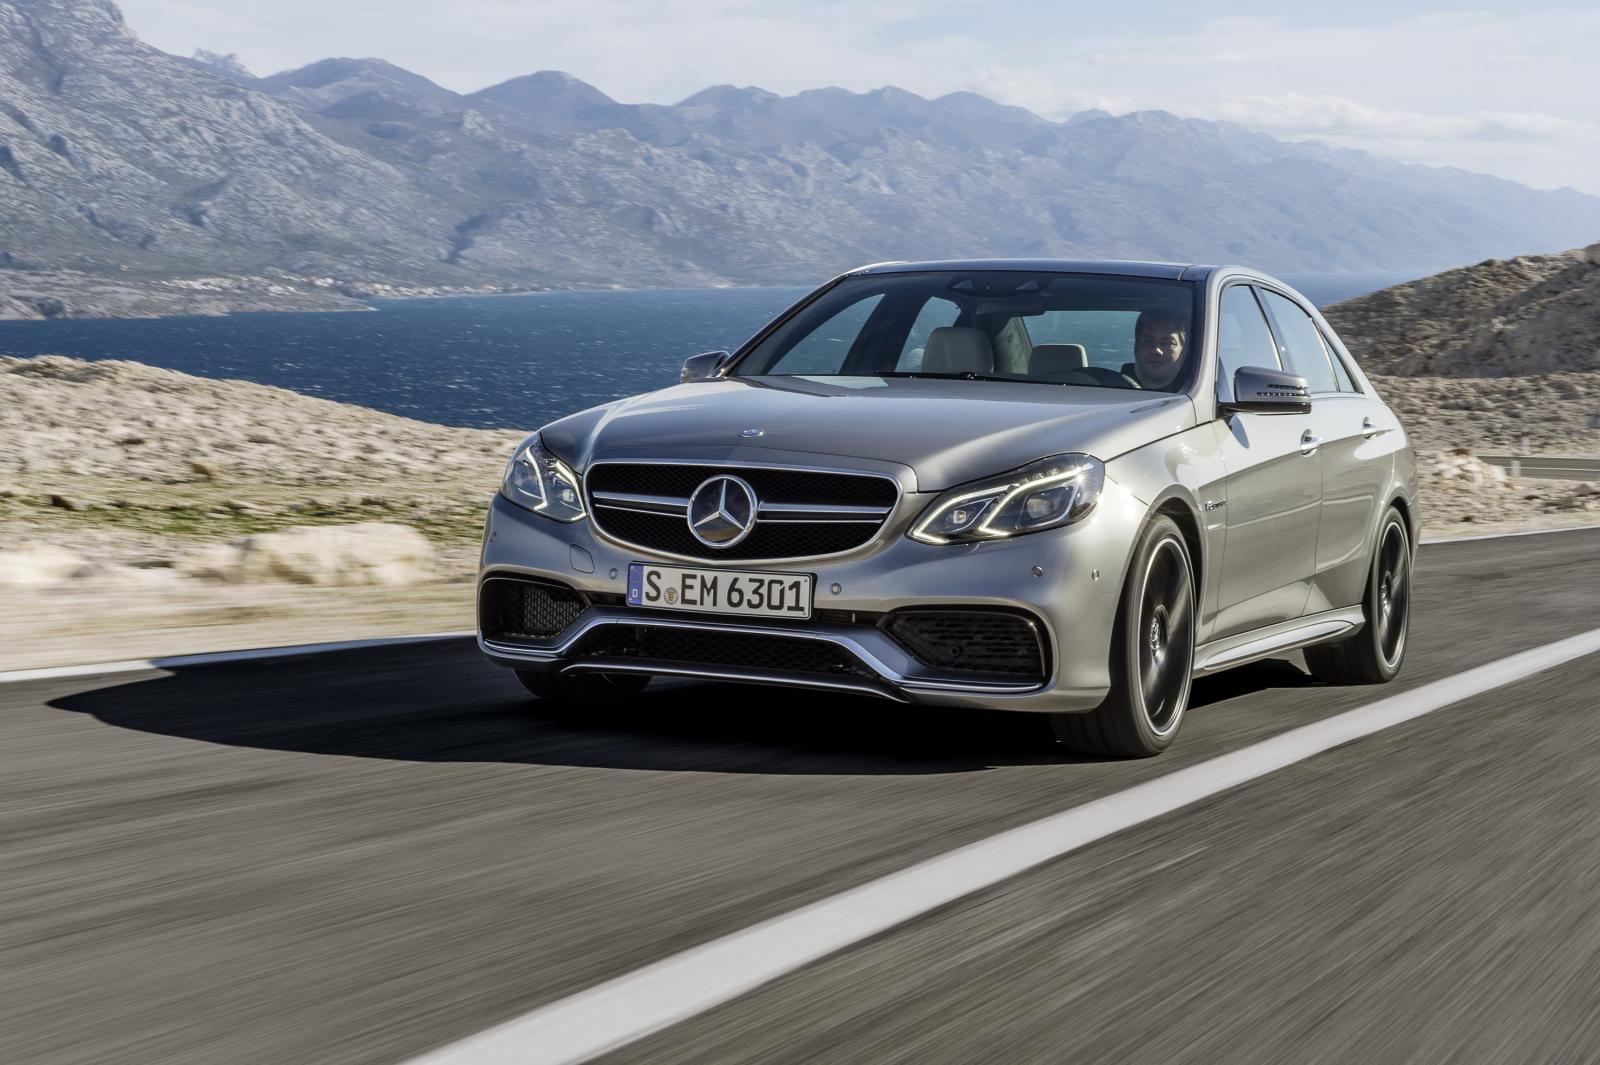 2018 Mercedes Benz E Class Coupe UK Version photo - 5